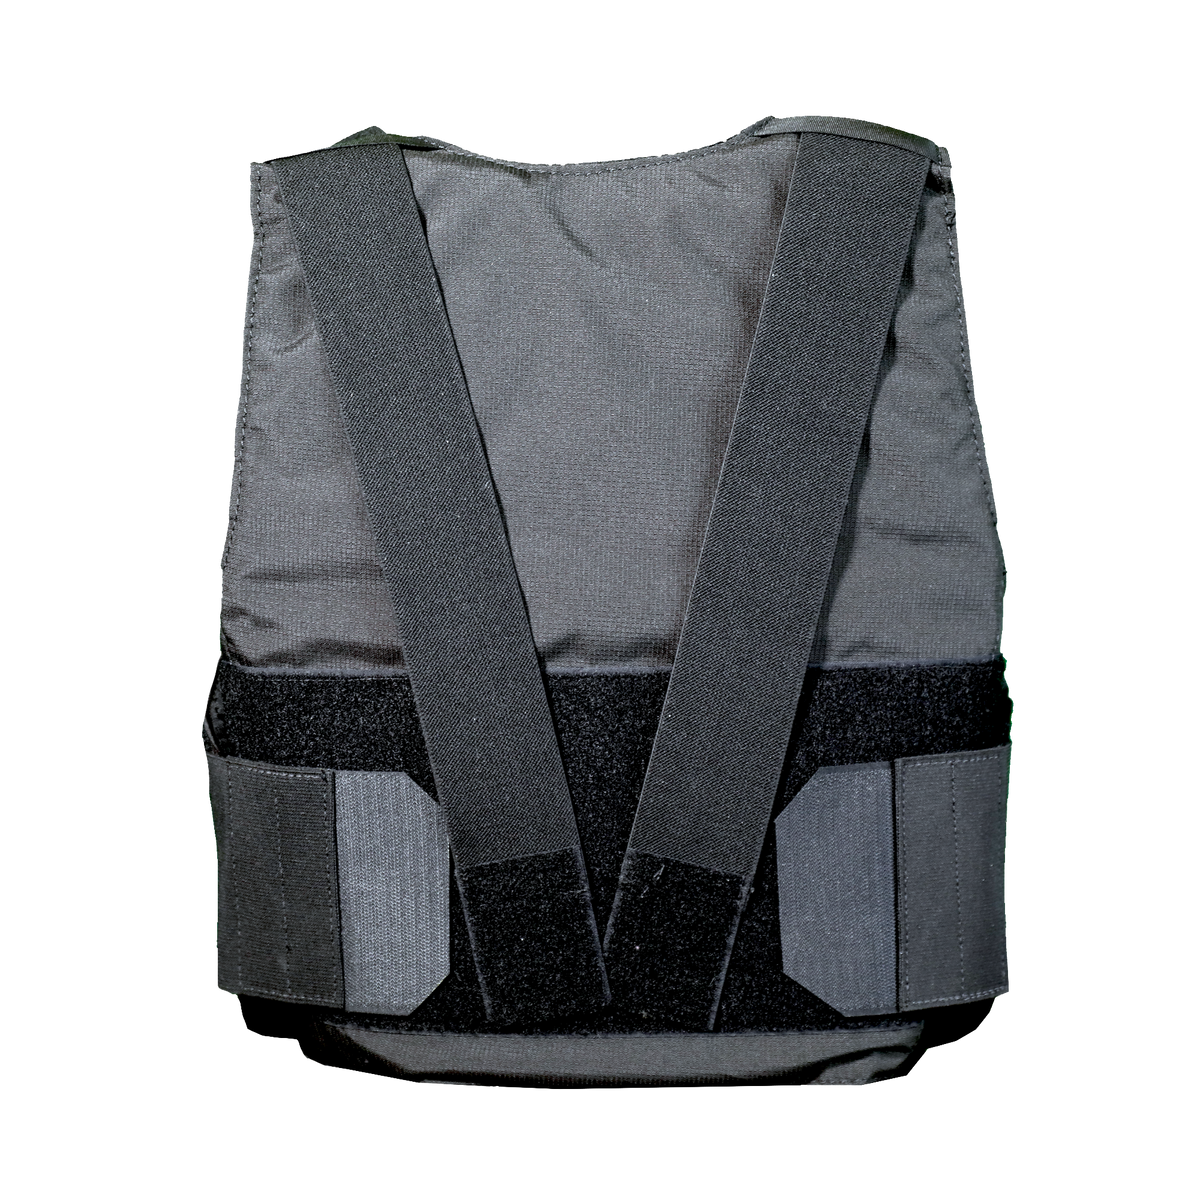 Citizen Armor V-Shield Ultra Conceal Female Vest back view